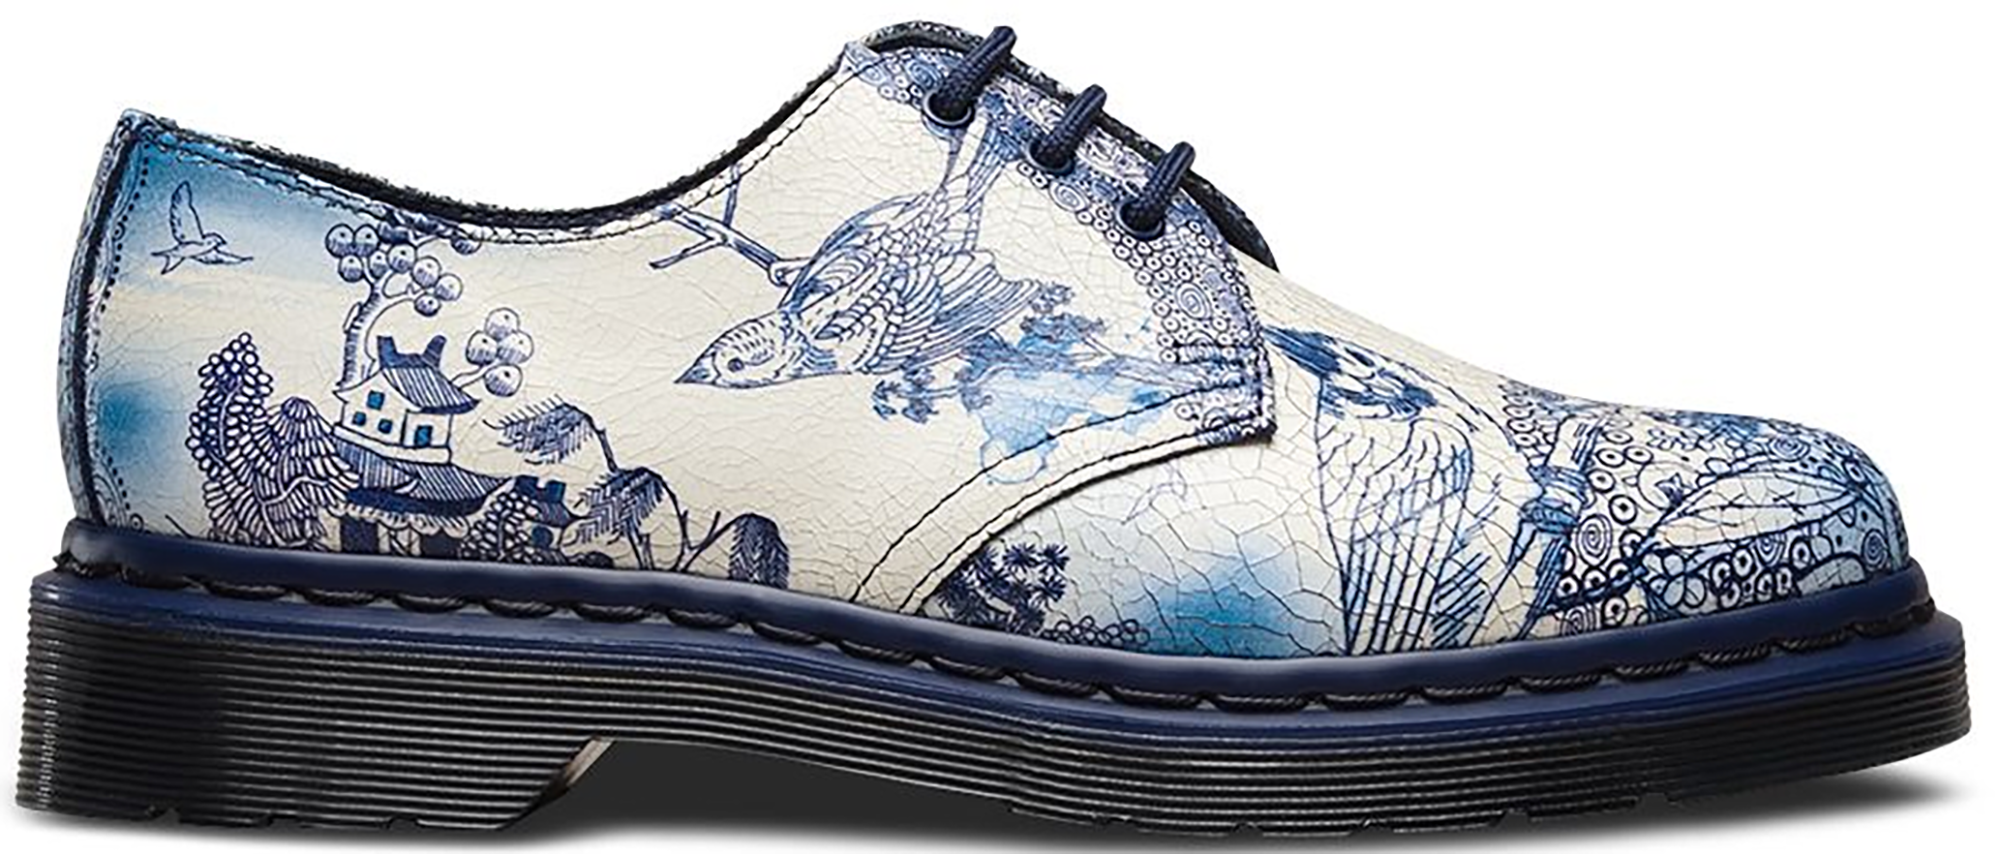 Dr. Martens 1461 Willow Cristal Suede